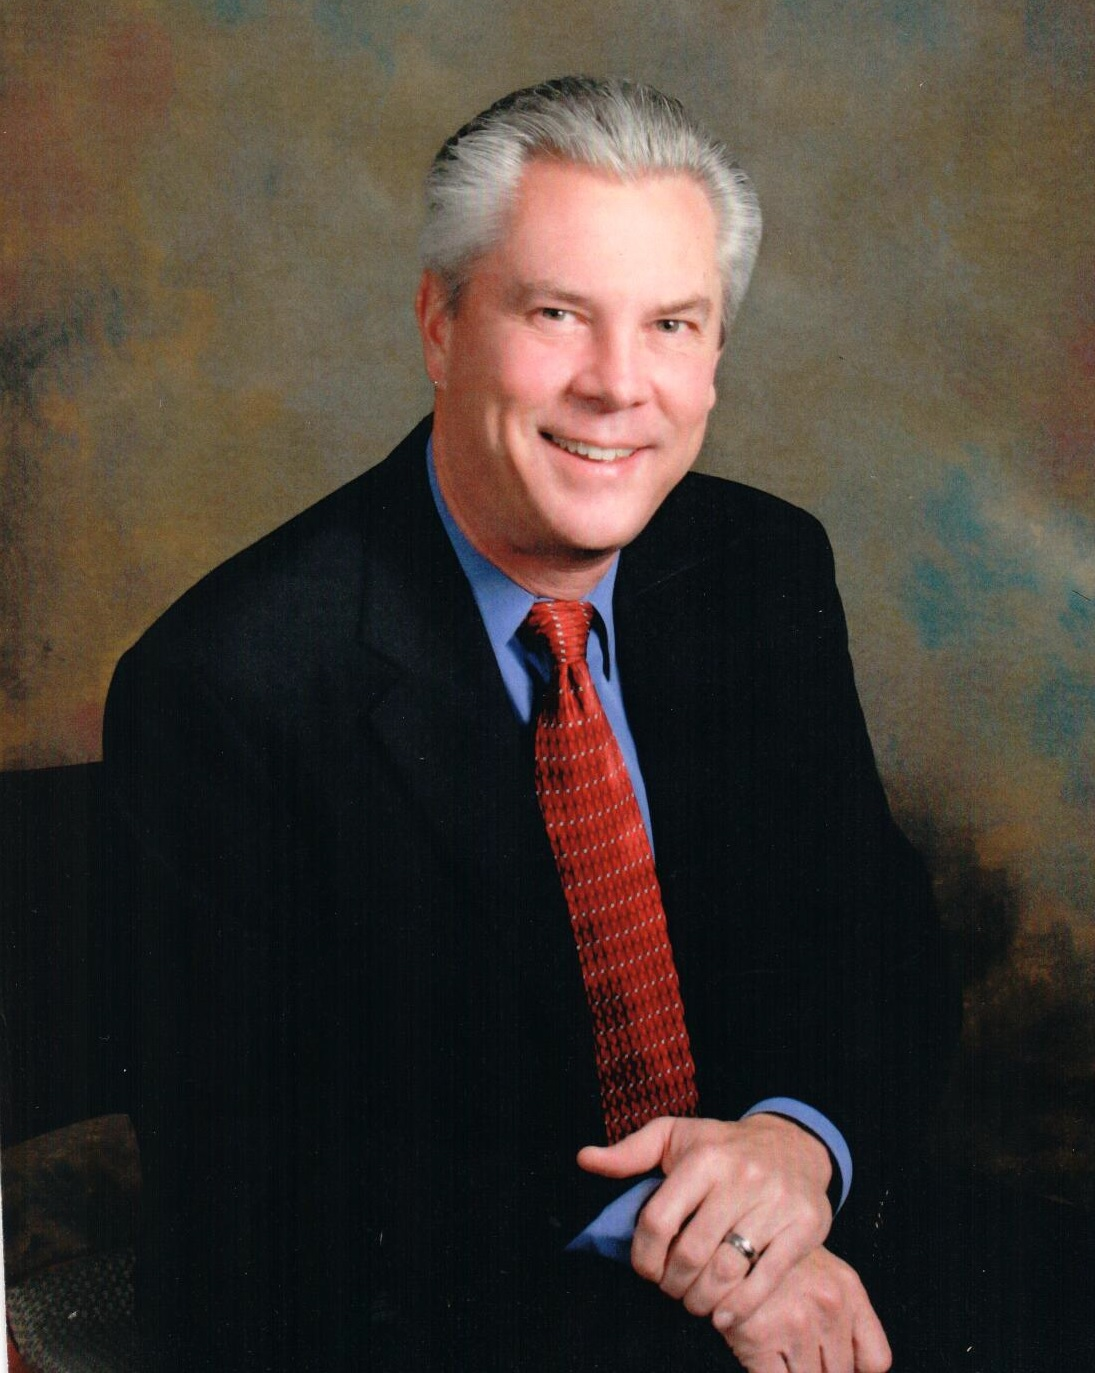 Dr. David Scales, MD